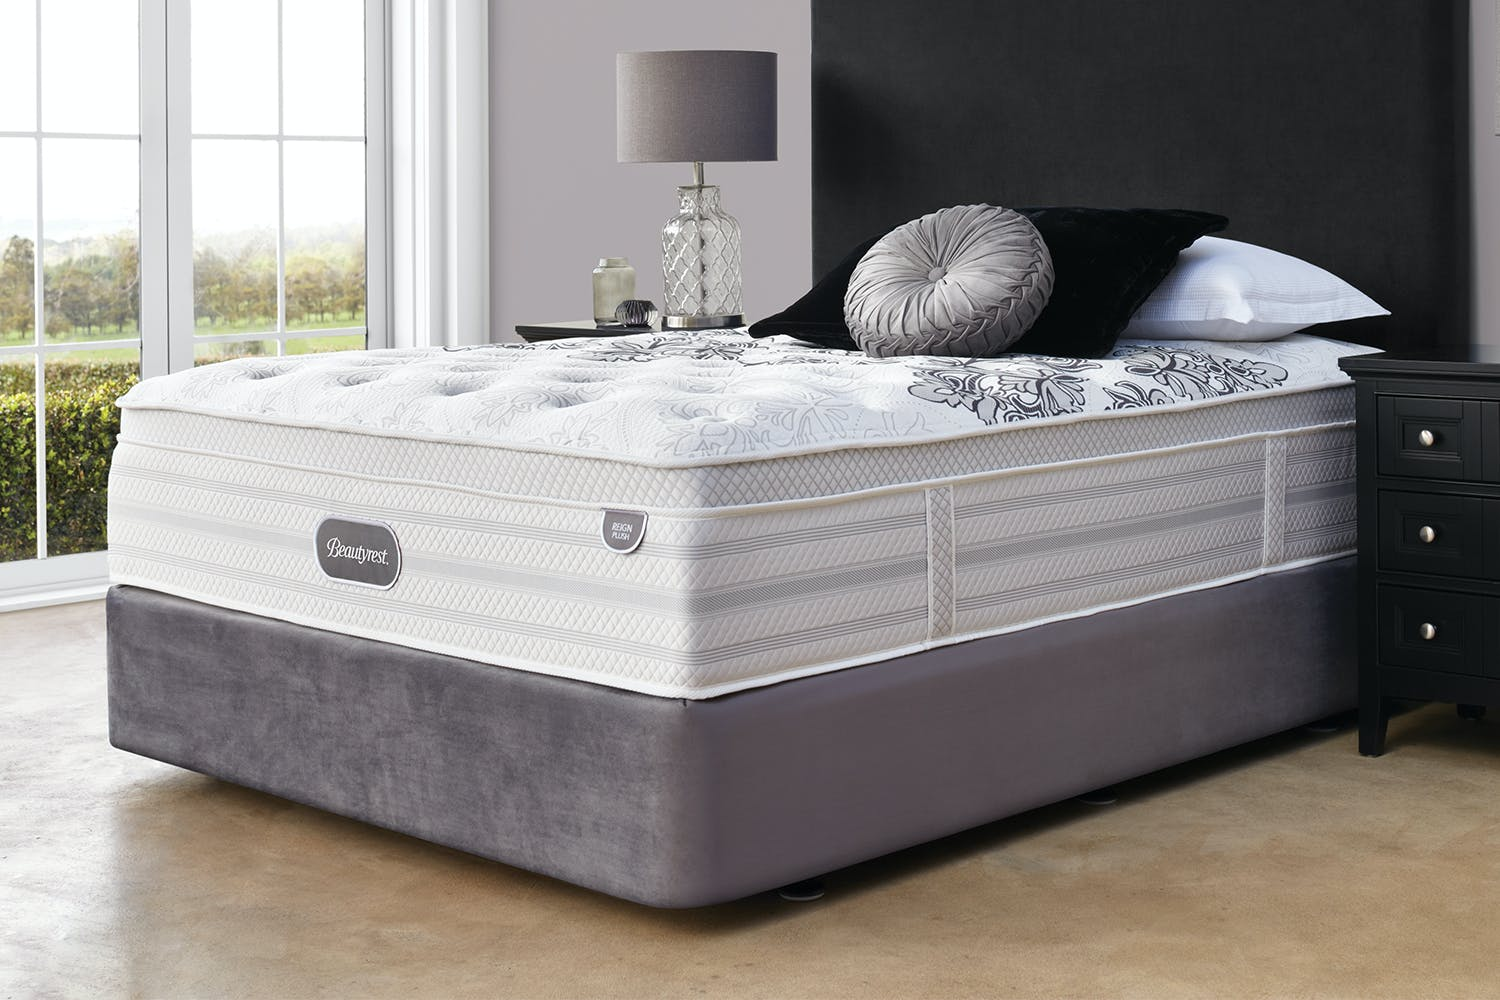 Image of Reign Soft Single Bed by Beautyrest